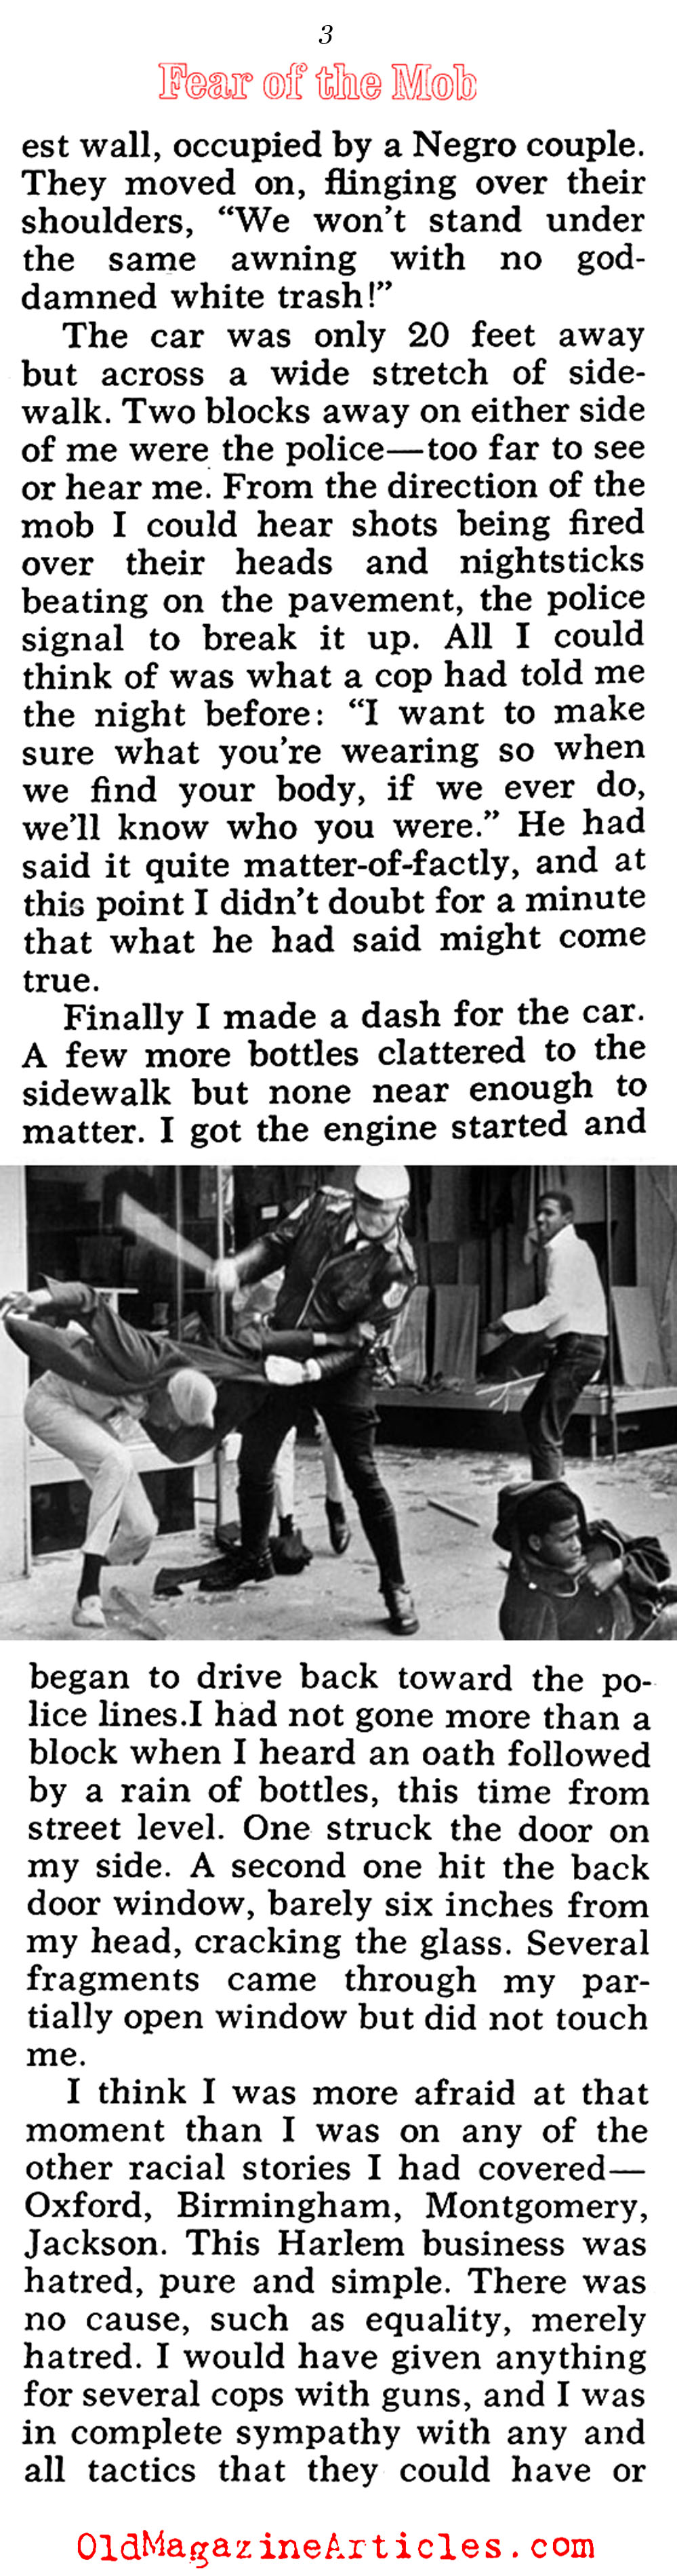 The 1964 Harlem Race Riot (Pageant Magazine, 1964)